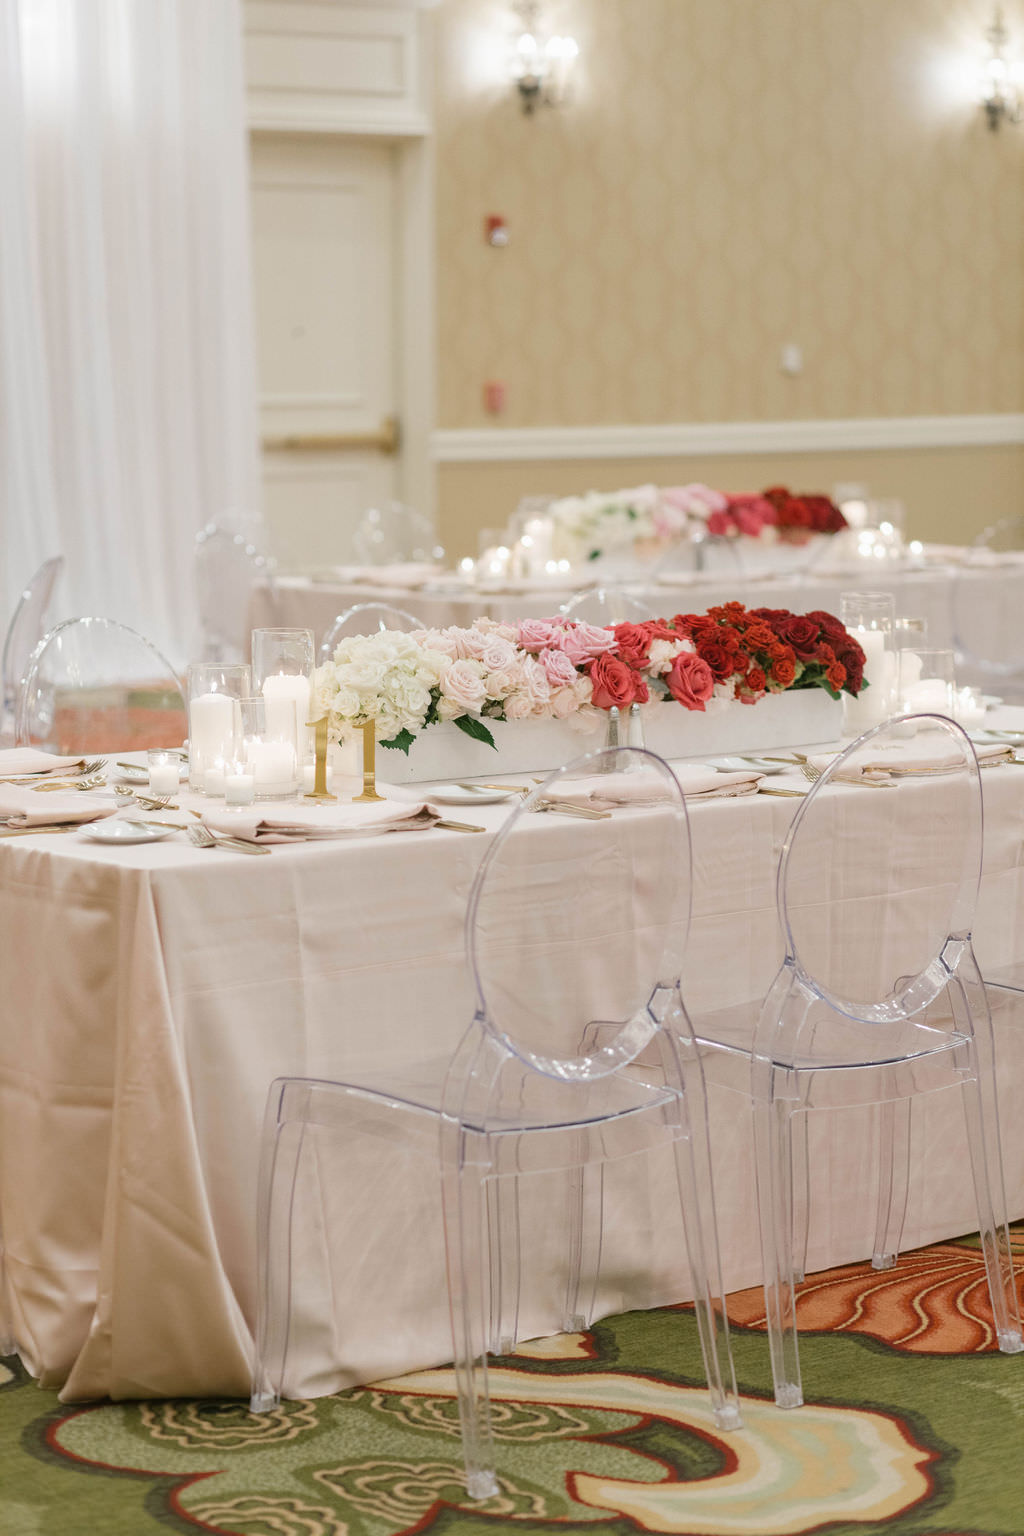 Romantic Wedding Reception Decor, Long Table with Light Pink Linens, Gold Flatware, Red, Blush Pink and Ivory Roses and Hydrangeas in White Planter Box Centerpiece and Ghost Acrylic Chairs   Tampa Bay Wedding Planner Parties A'la Carte   St. Pete Wedding Florist Bruce Wayne Florals   Wedding Rentals A Chair Affair   Over the Top Rental Linens